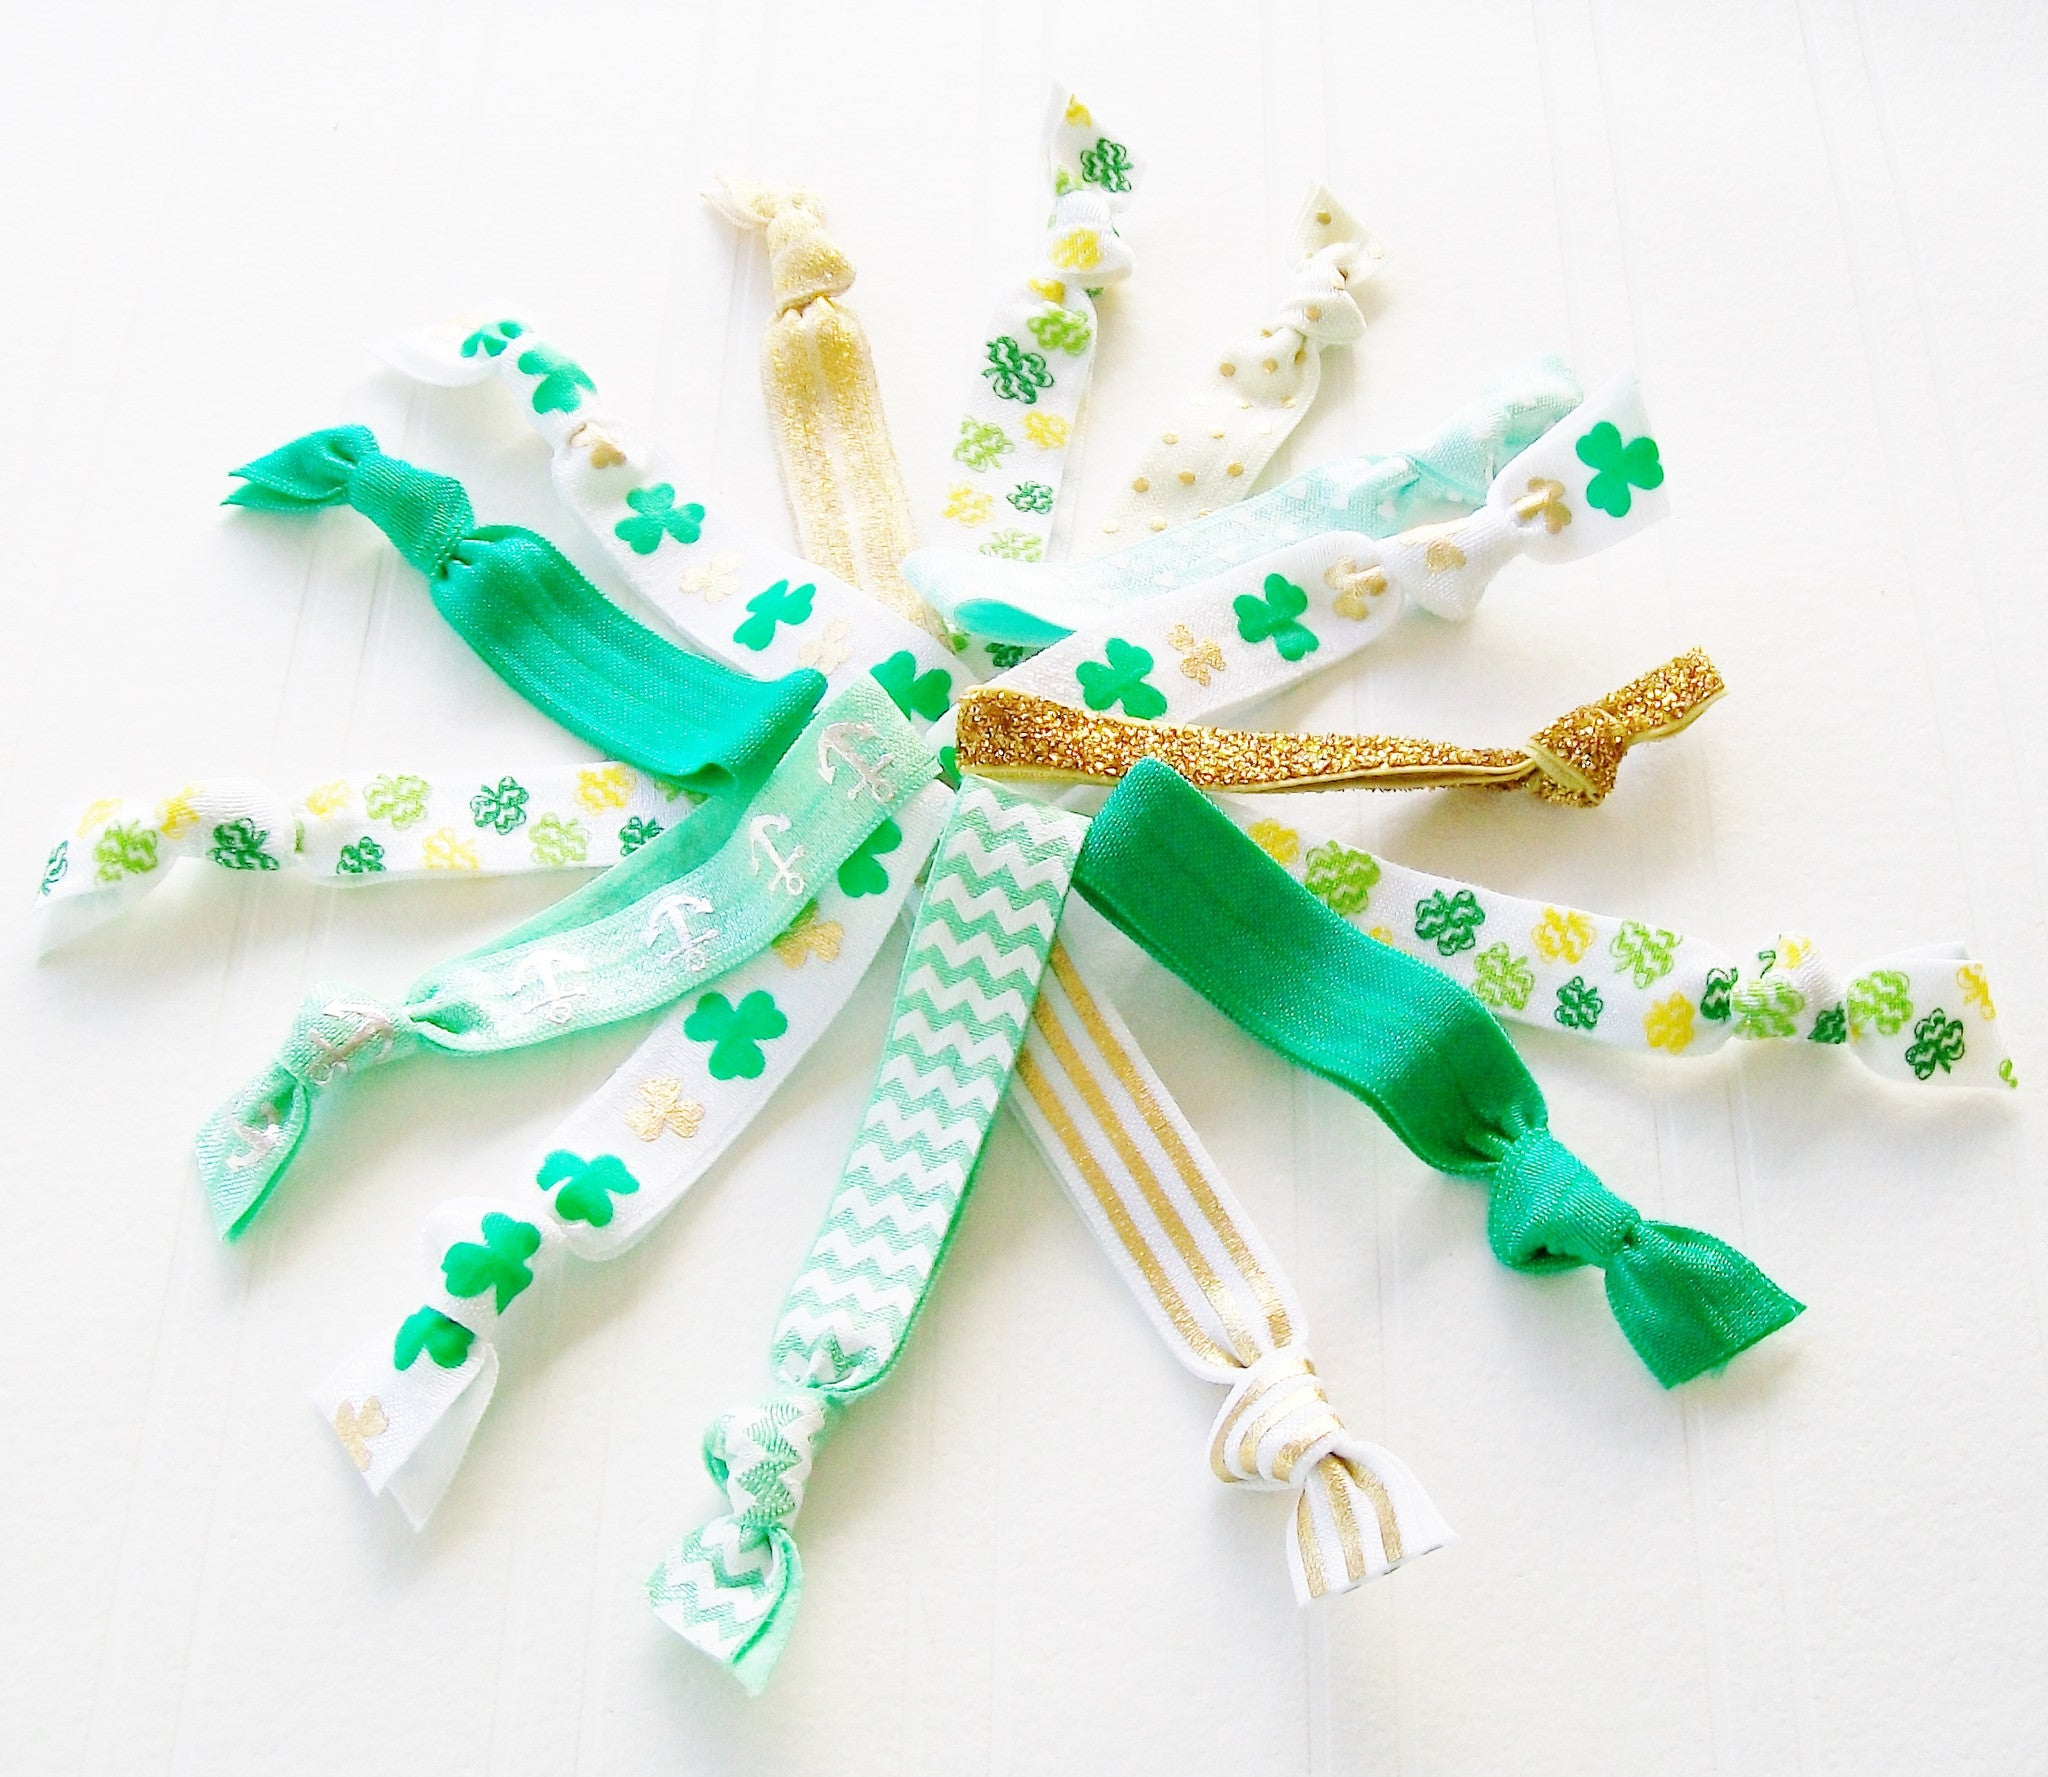 St. Patrick's Day Hair Tie Gift Set, Grab Bag Mix of 20